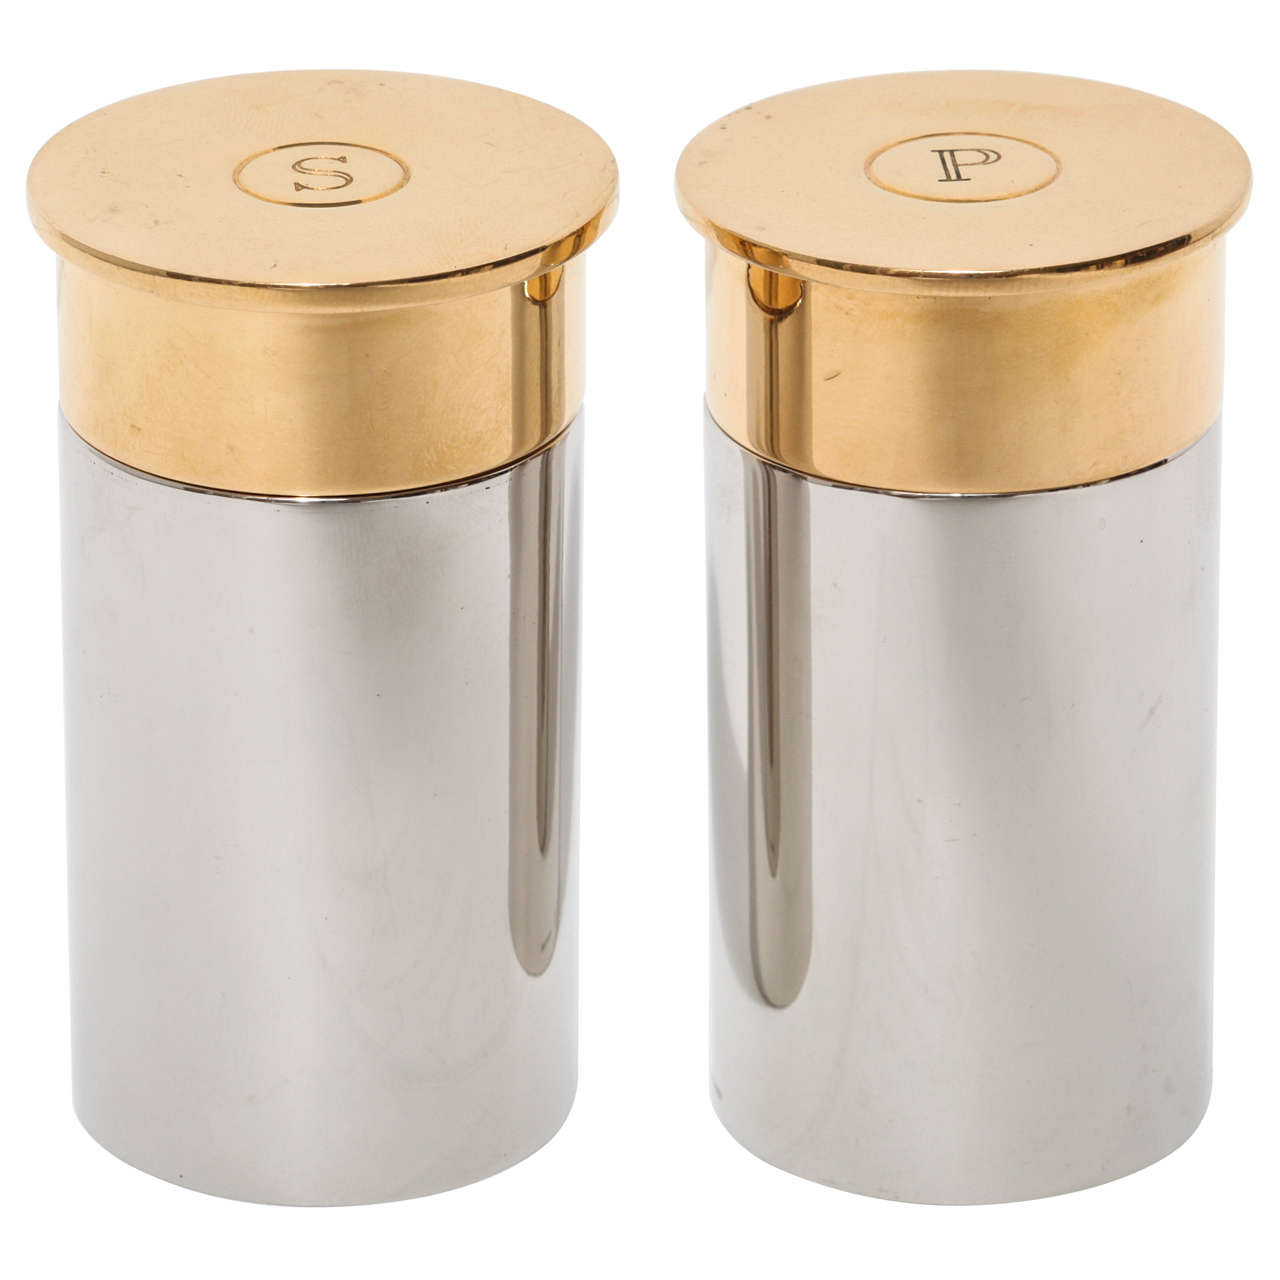 hermes bullet salt and pepper shakers at stdibs - hermes bullet salt and pepper shakers